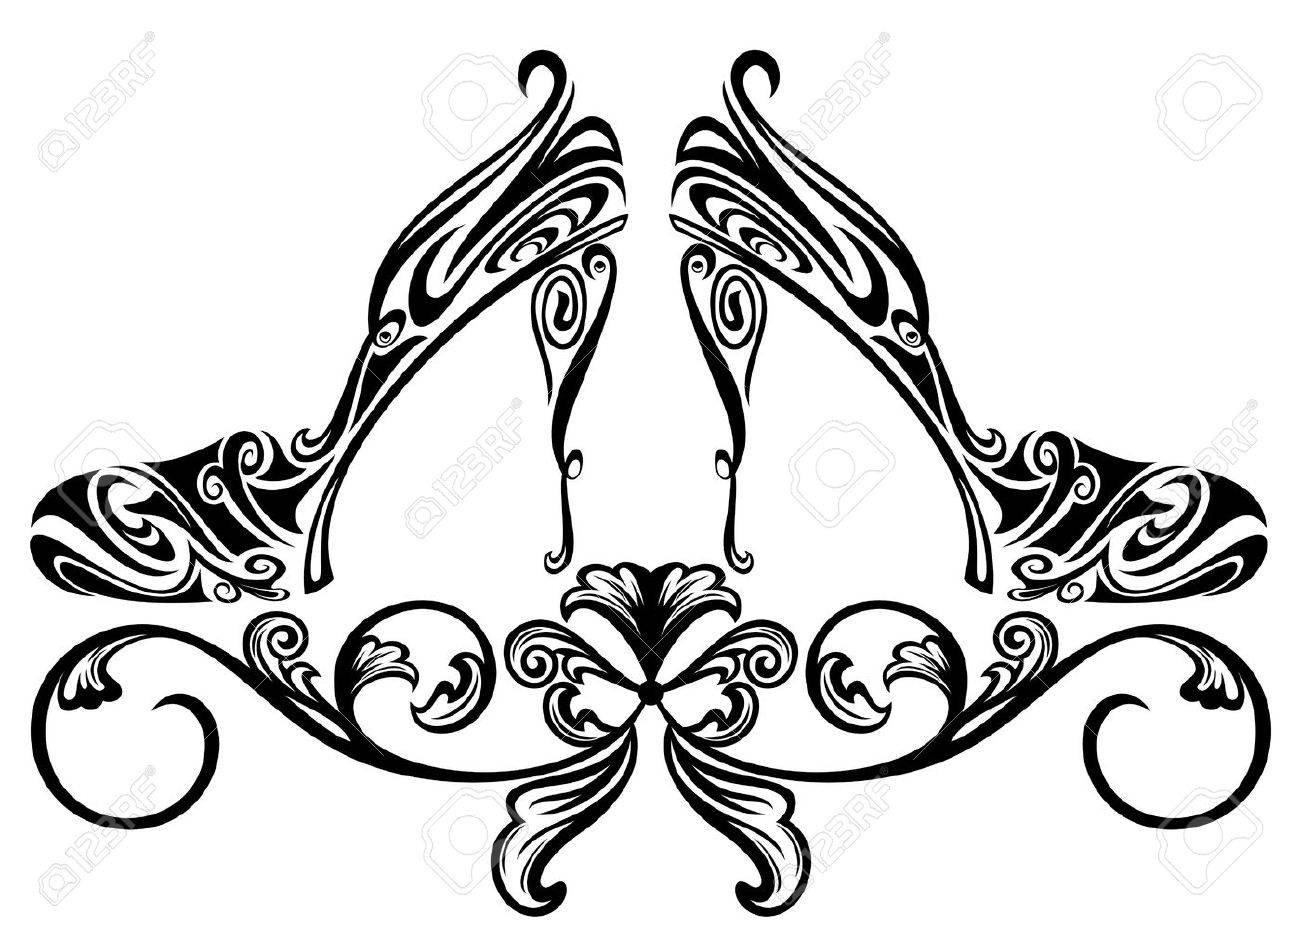 ornate shoes design element - black and white floral swirls vector illustration Stock Vector - 17853004